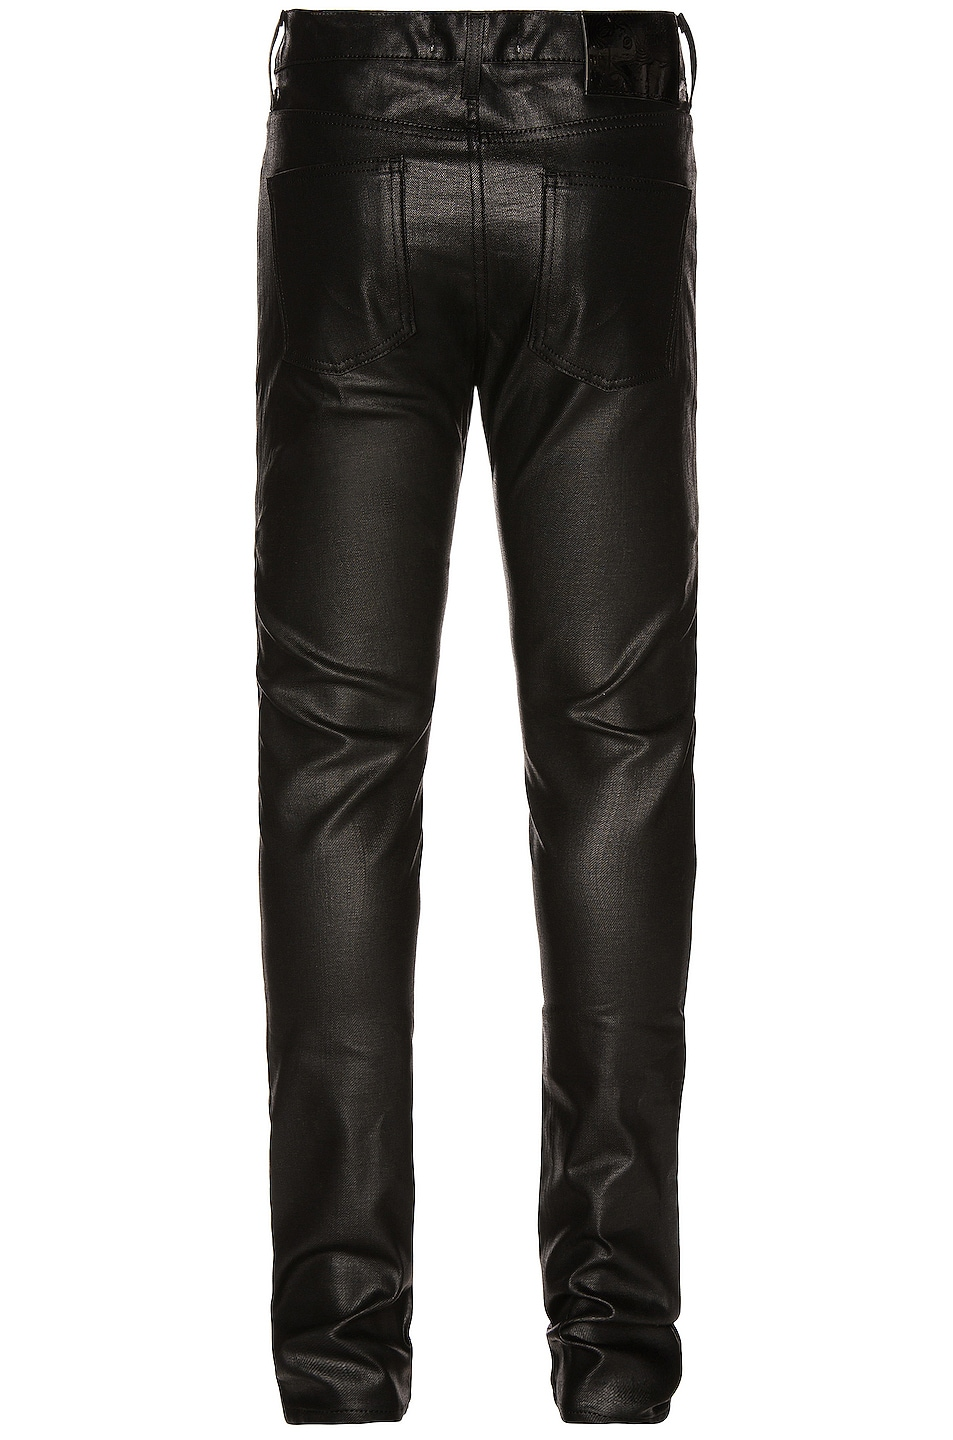 Image 2 of Naked & Famous Denim Stacked Guy 12oz Black Waxed Stretch in Black